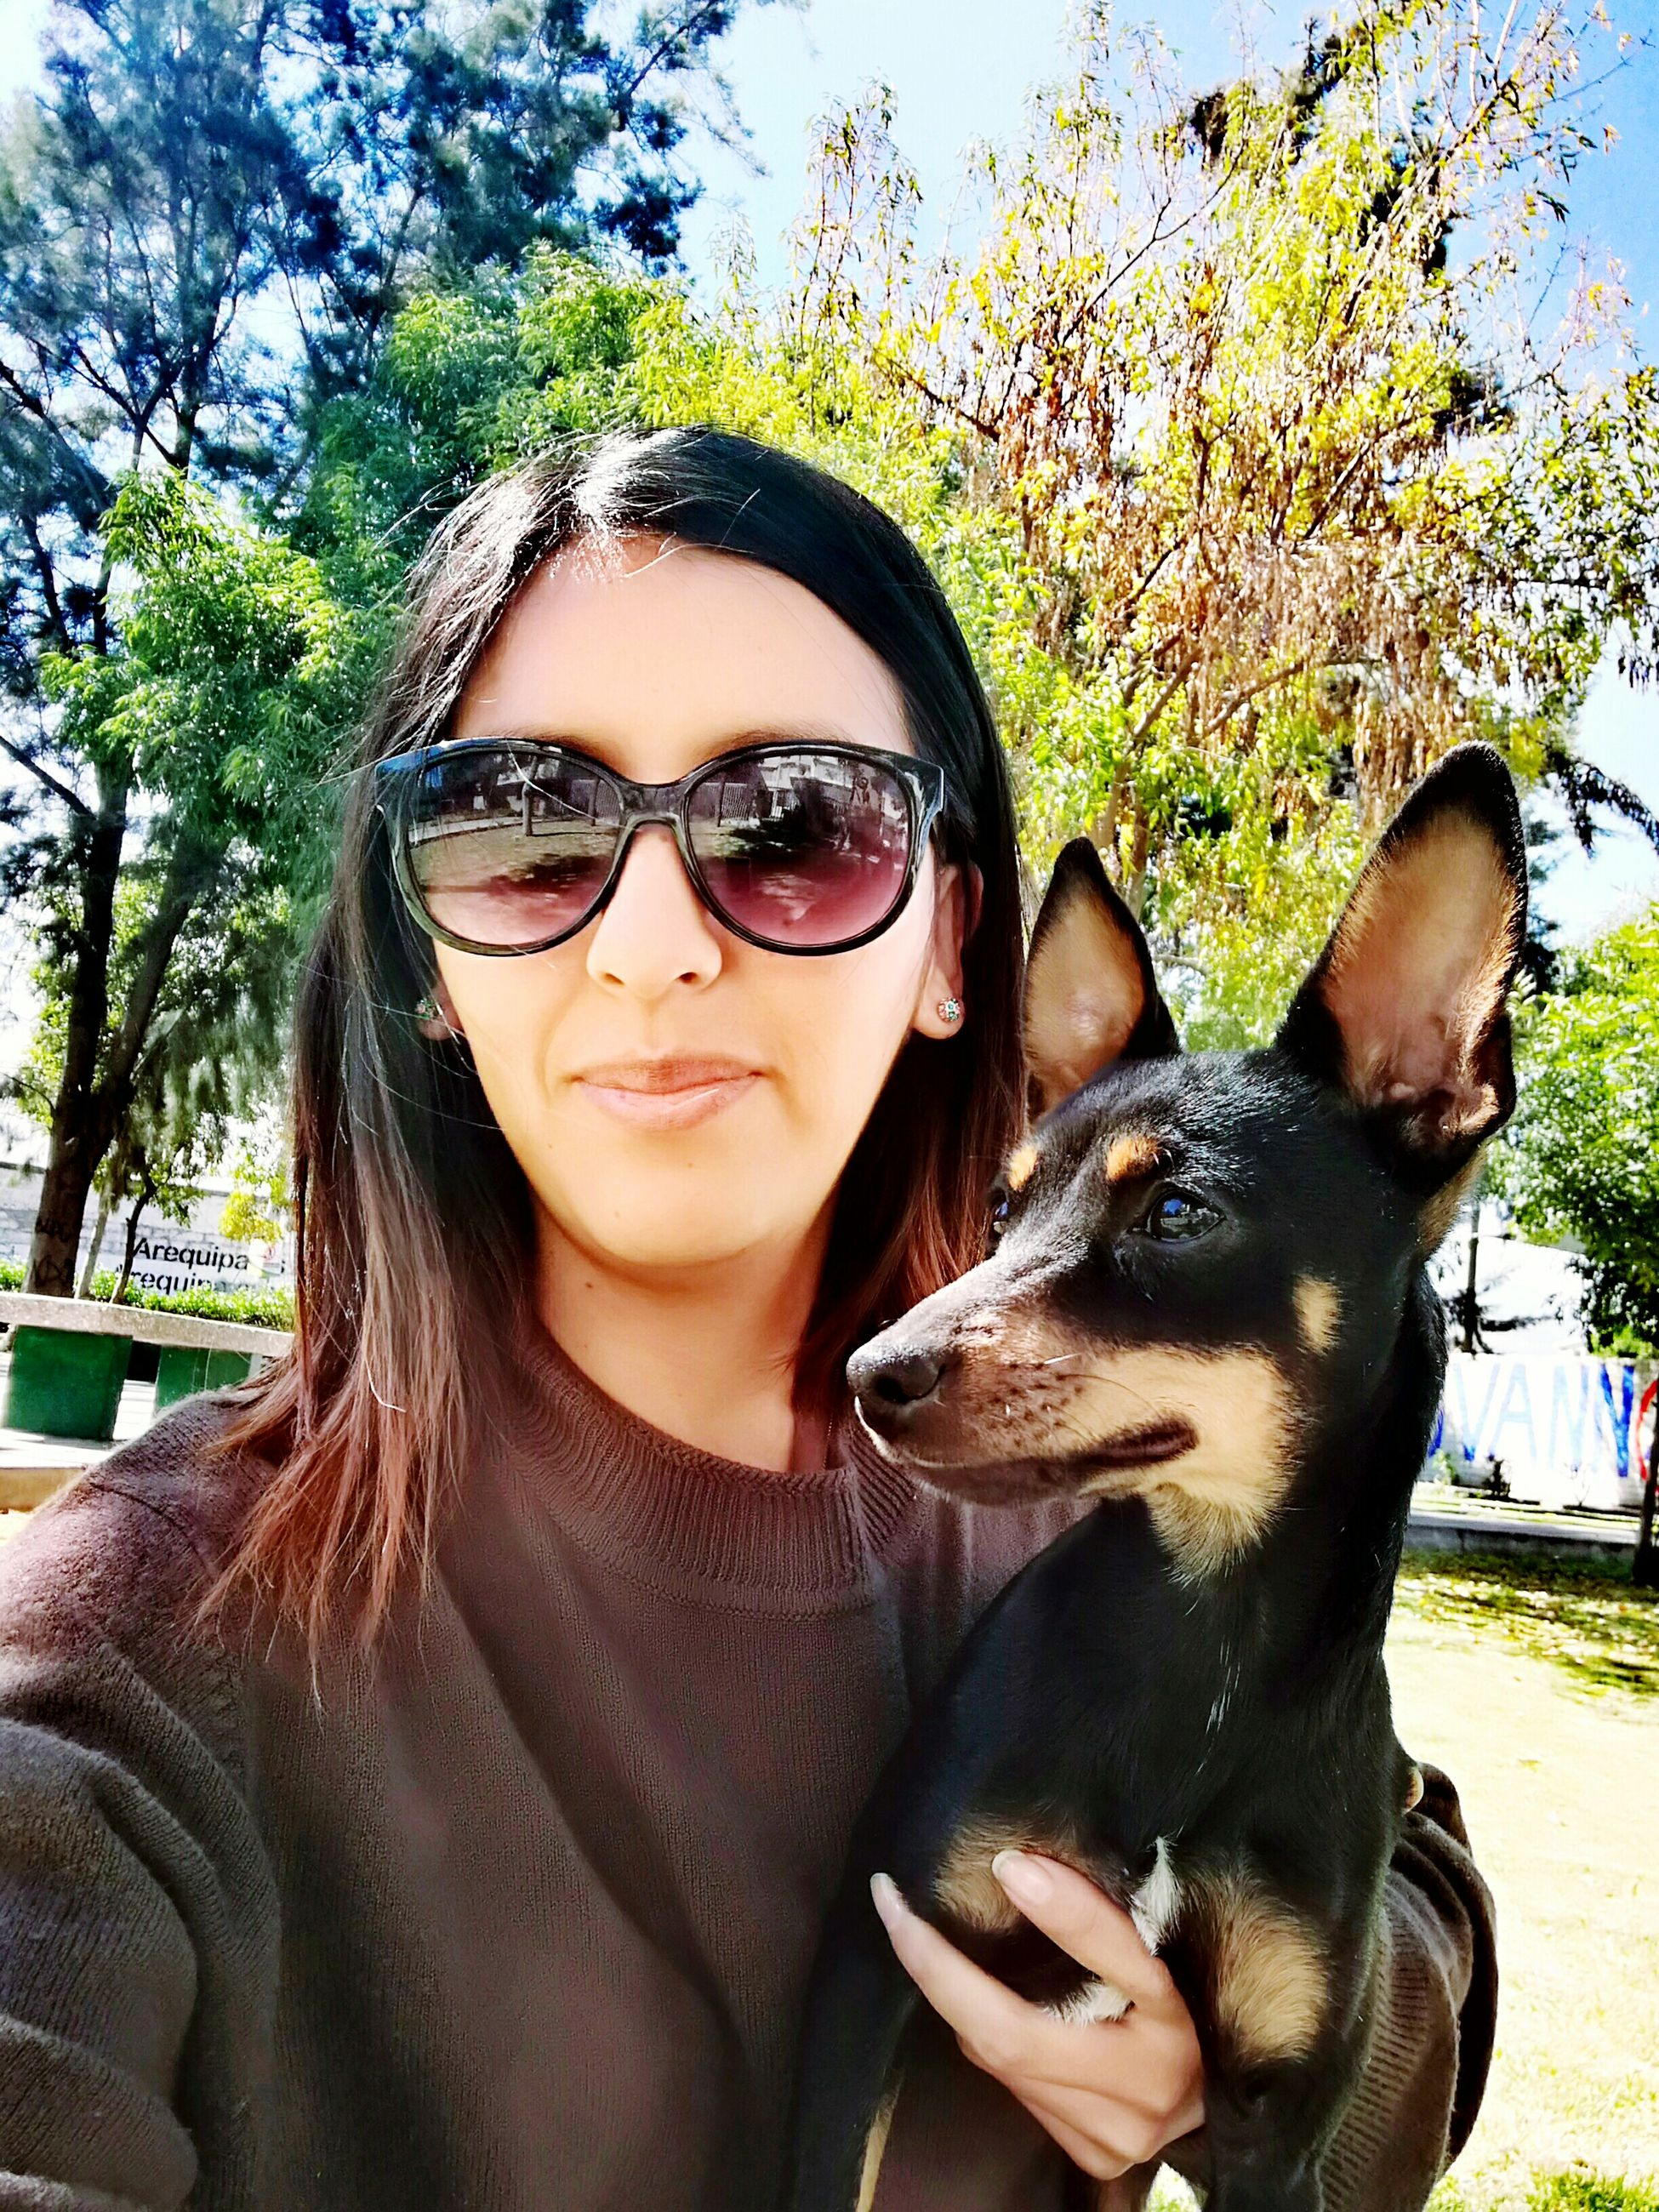 real people, dog, pets, one animal, mammal, sunglasses, animal themes, domestic animals, looking at camera, portrait, young women, day, young adult, lifestyles, bonding, smiling, outdoors, one person, tree, nature